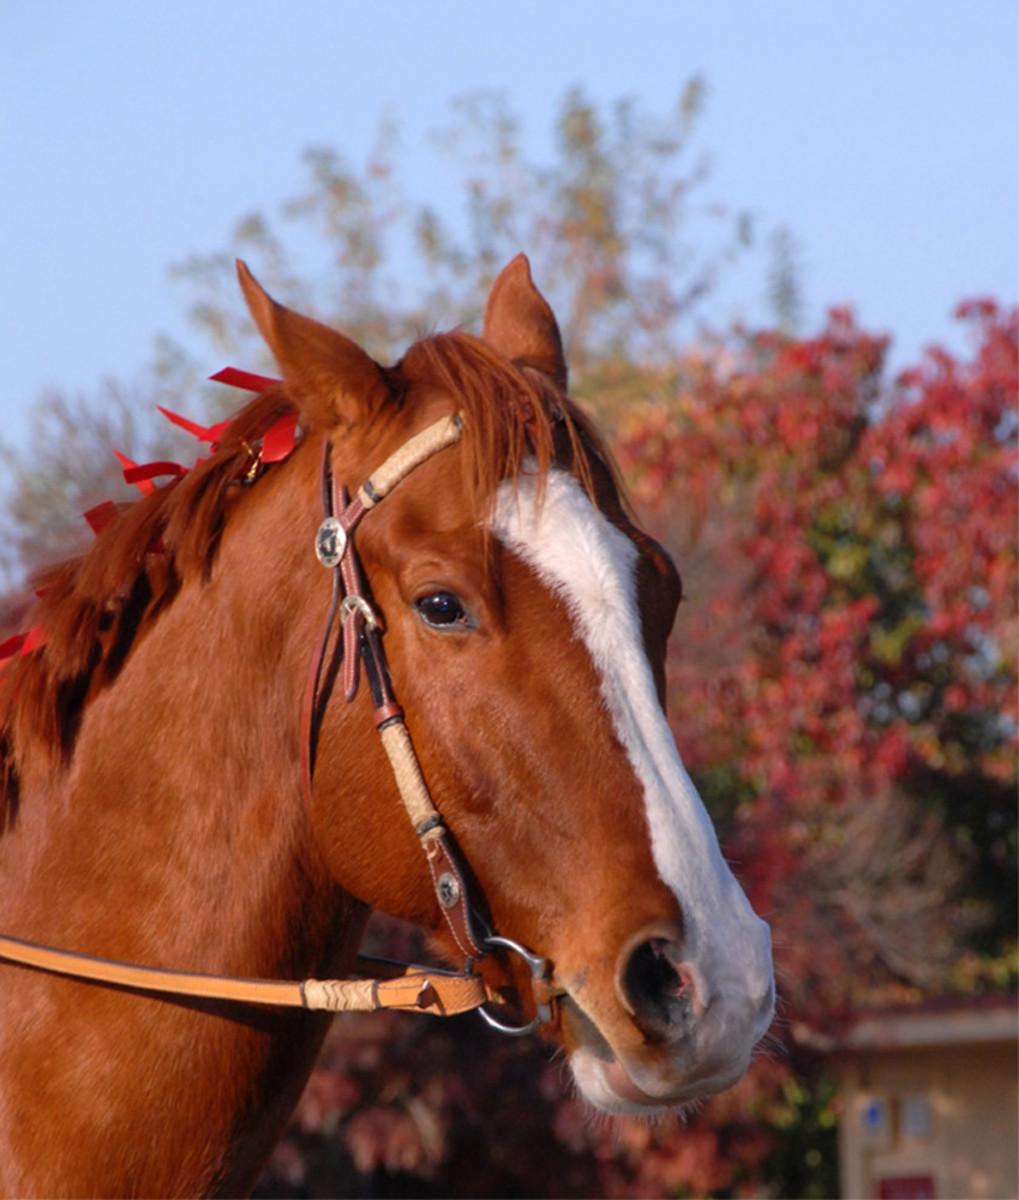 Horse Used by permission. All photos in this section courtesy of: Tammy Mallett: Photography by Tammy: www.picsbytammy.com